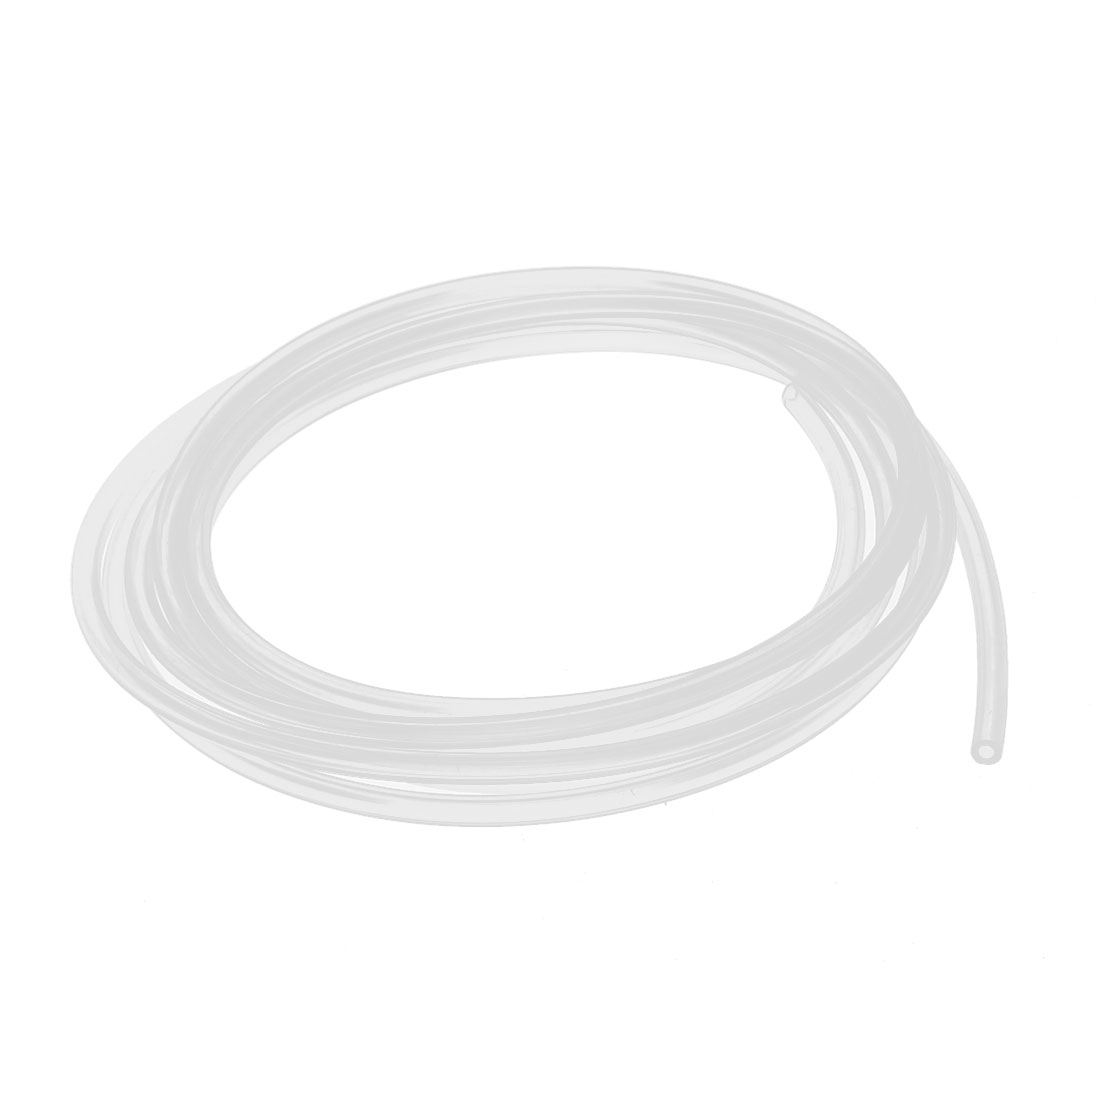 2mm x 4mm Silicone Vacuum Translucent Tube Beer Water Air Pump Hose Pipe 3 Meters Long